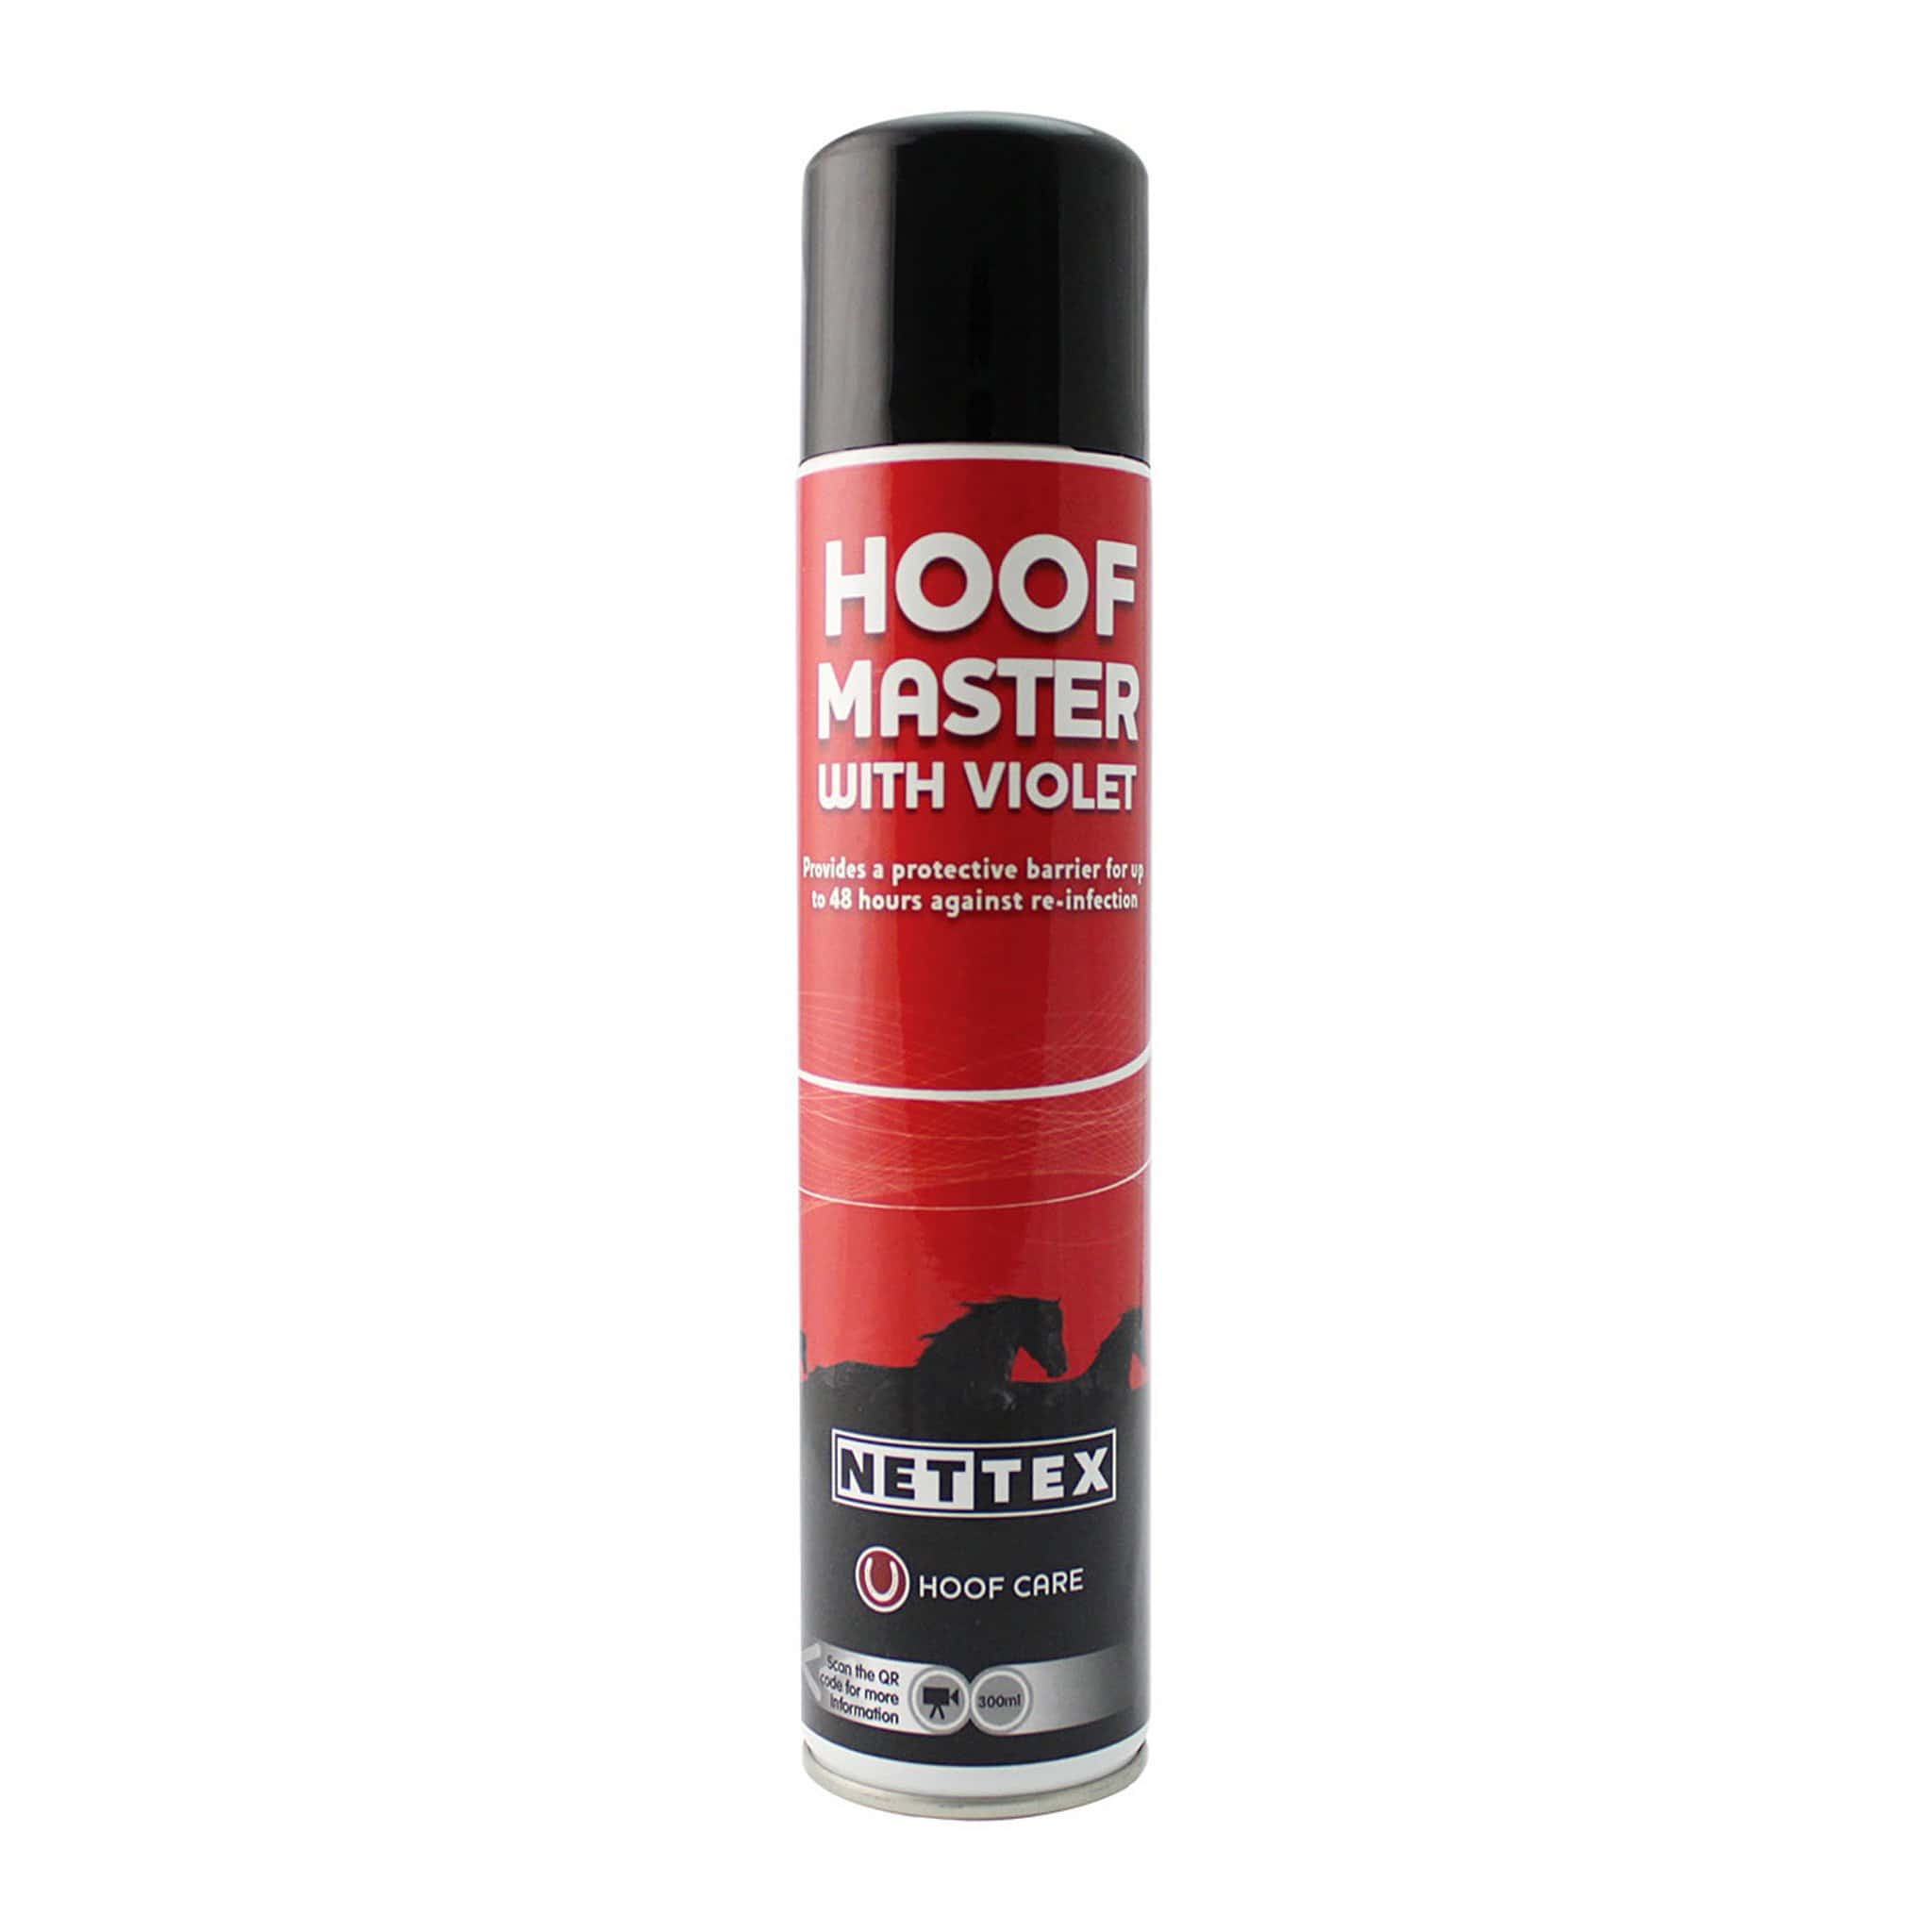 Nettex Hoof Master with Violet 300ML NET0175.